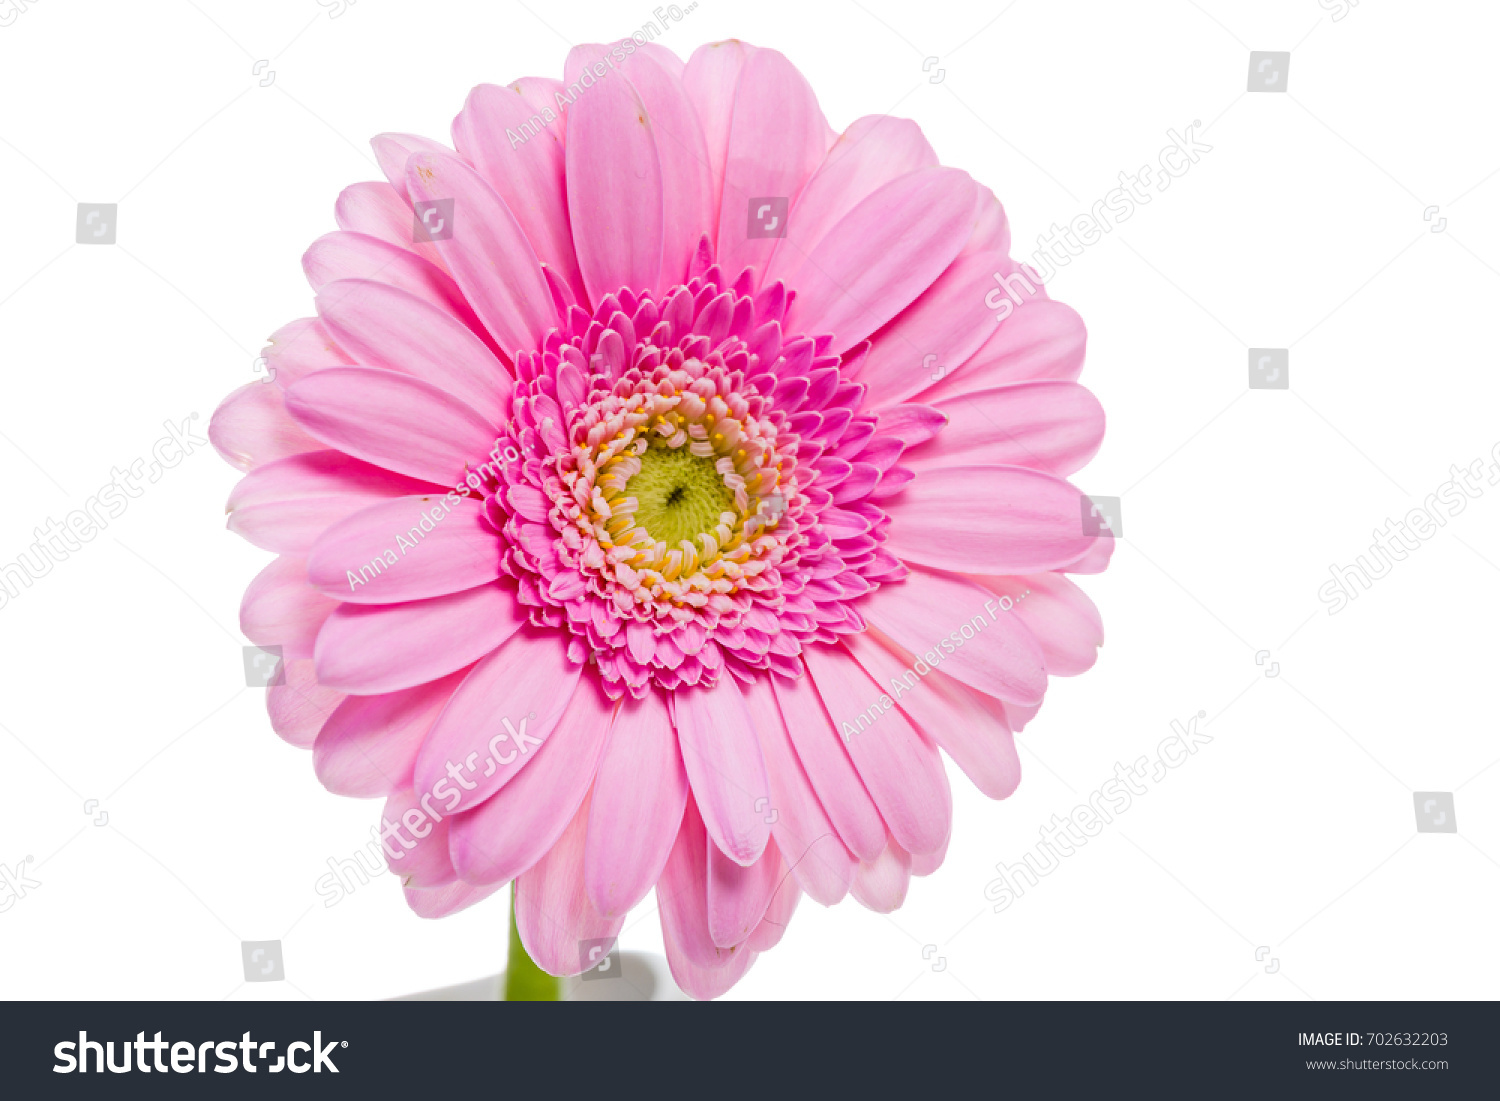 A Pink Gerbera Daisy Flower Isolated On White Ez Canvas